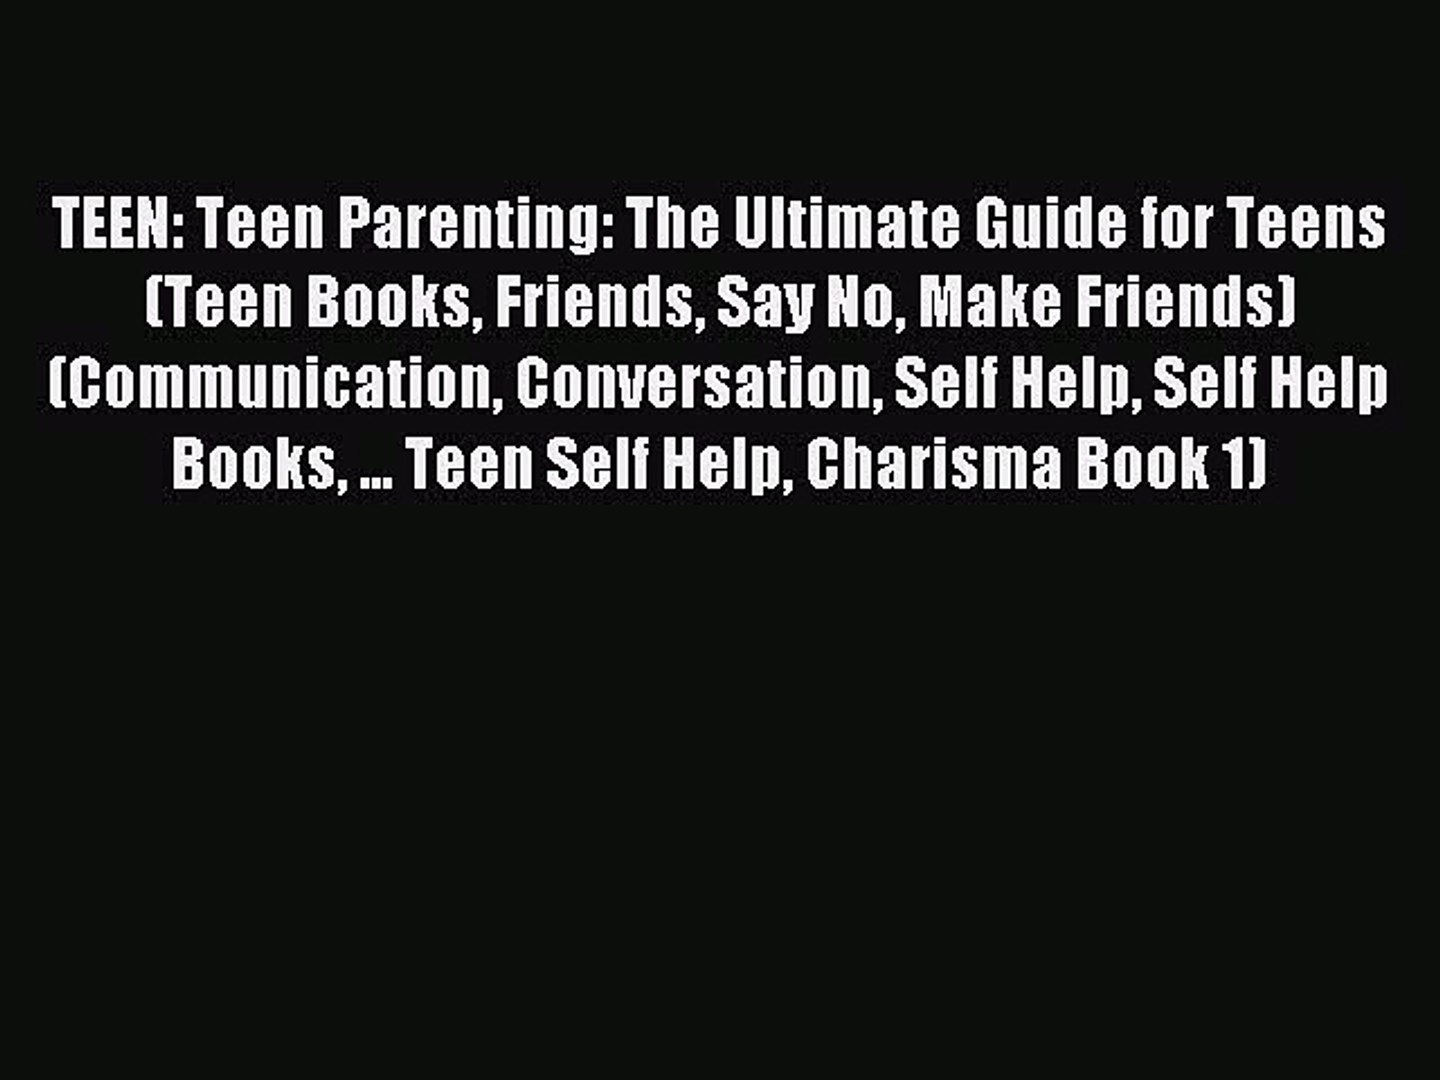 Read TEEN: Teen Parenting: The Ultimate Guide for Teens (Teen Books Friends Say No Make Friends)